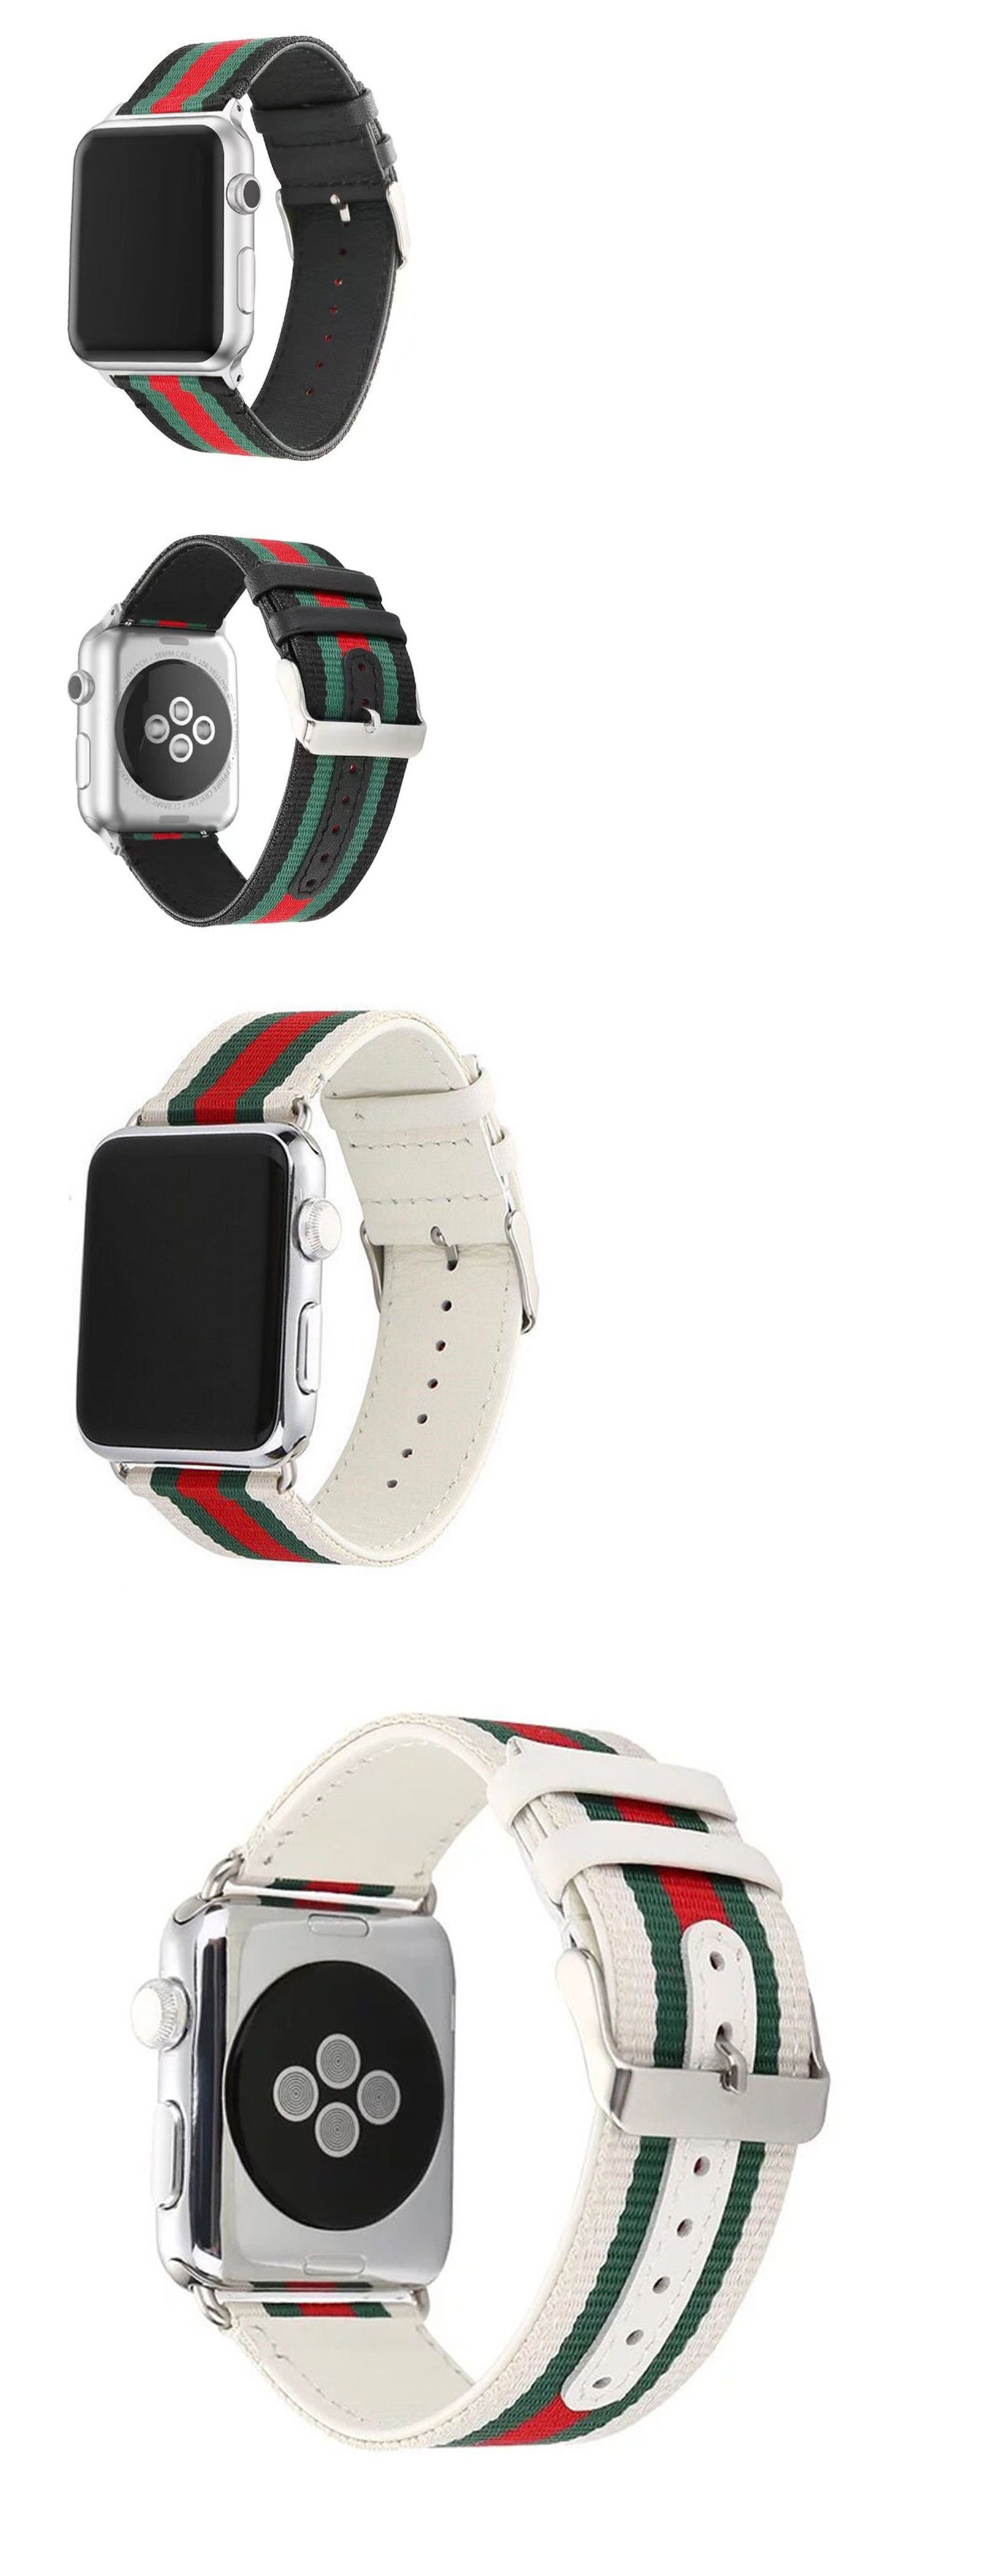 7ee2a2193ed Wristwatch Bands 98624  Leather Watch Bands Apple 38 42Mm Pattern Gucci  Nylon Sport New Replacement -  BUY IT NOW ONLY   12.99 on eBay!